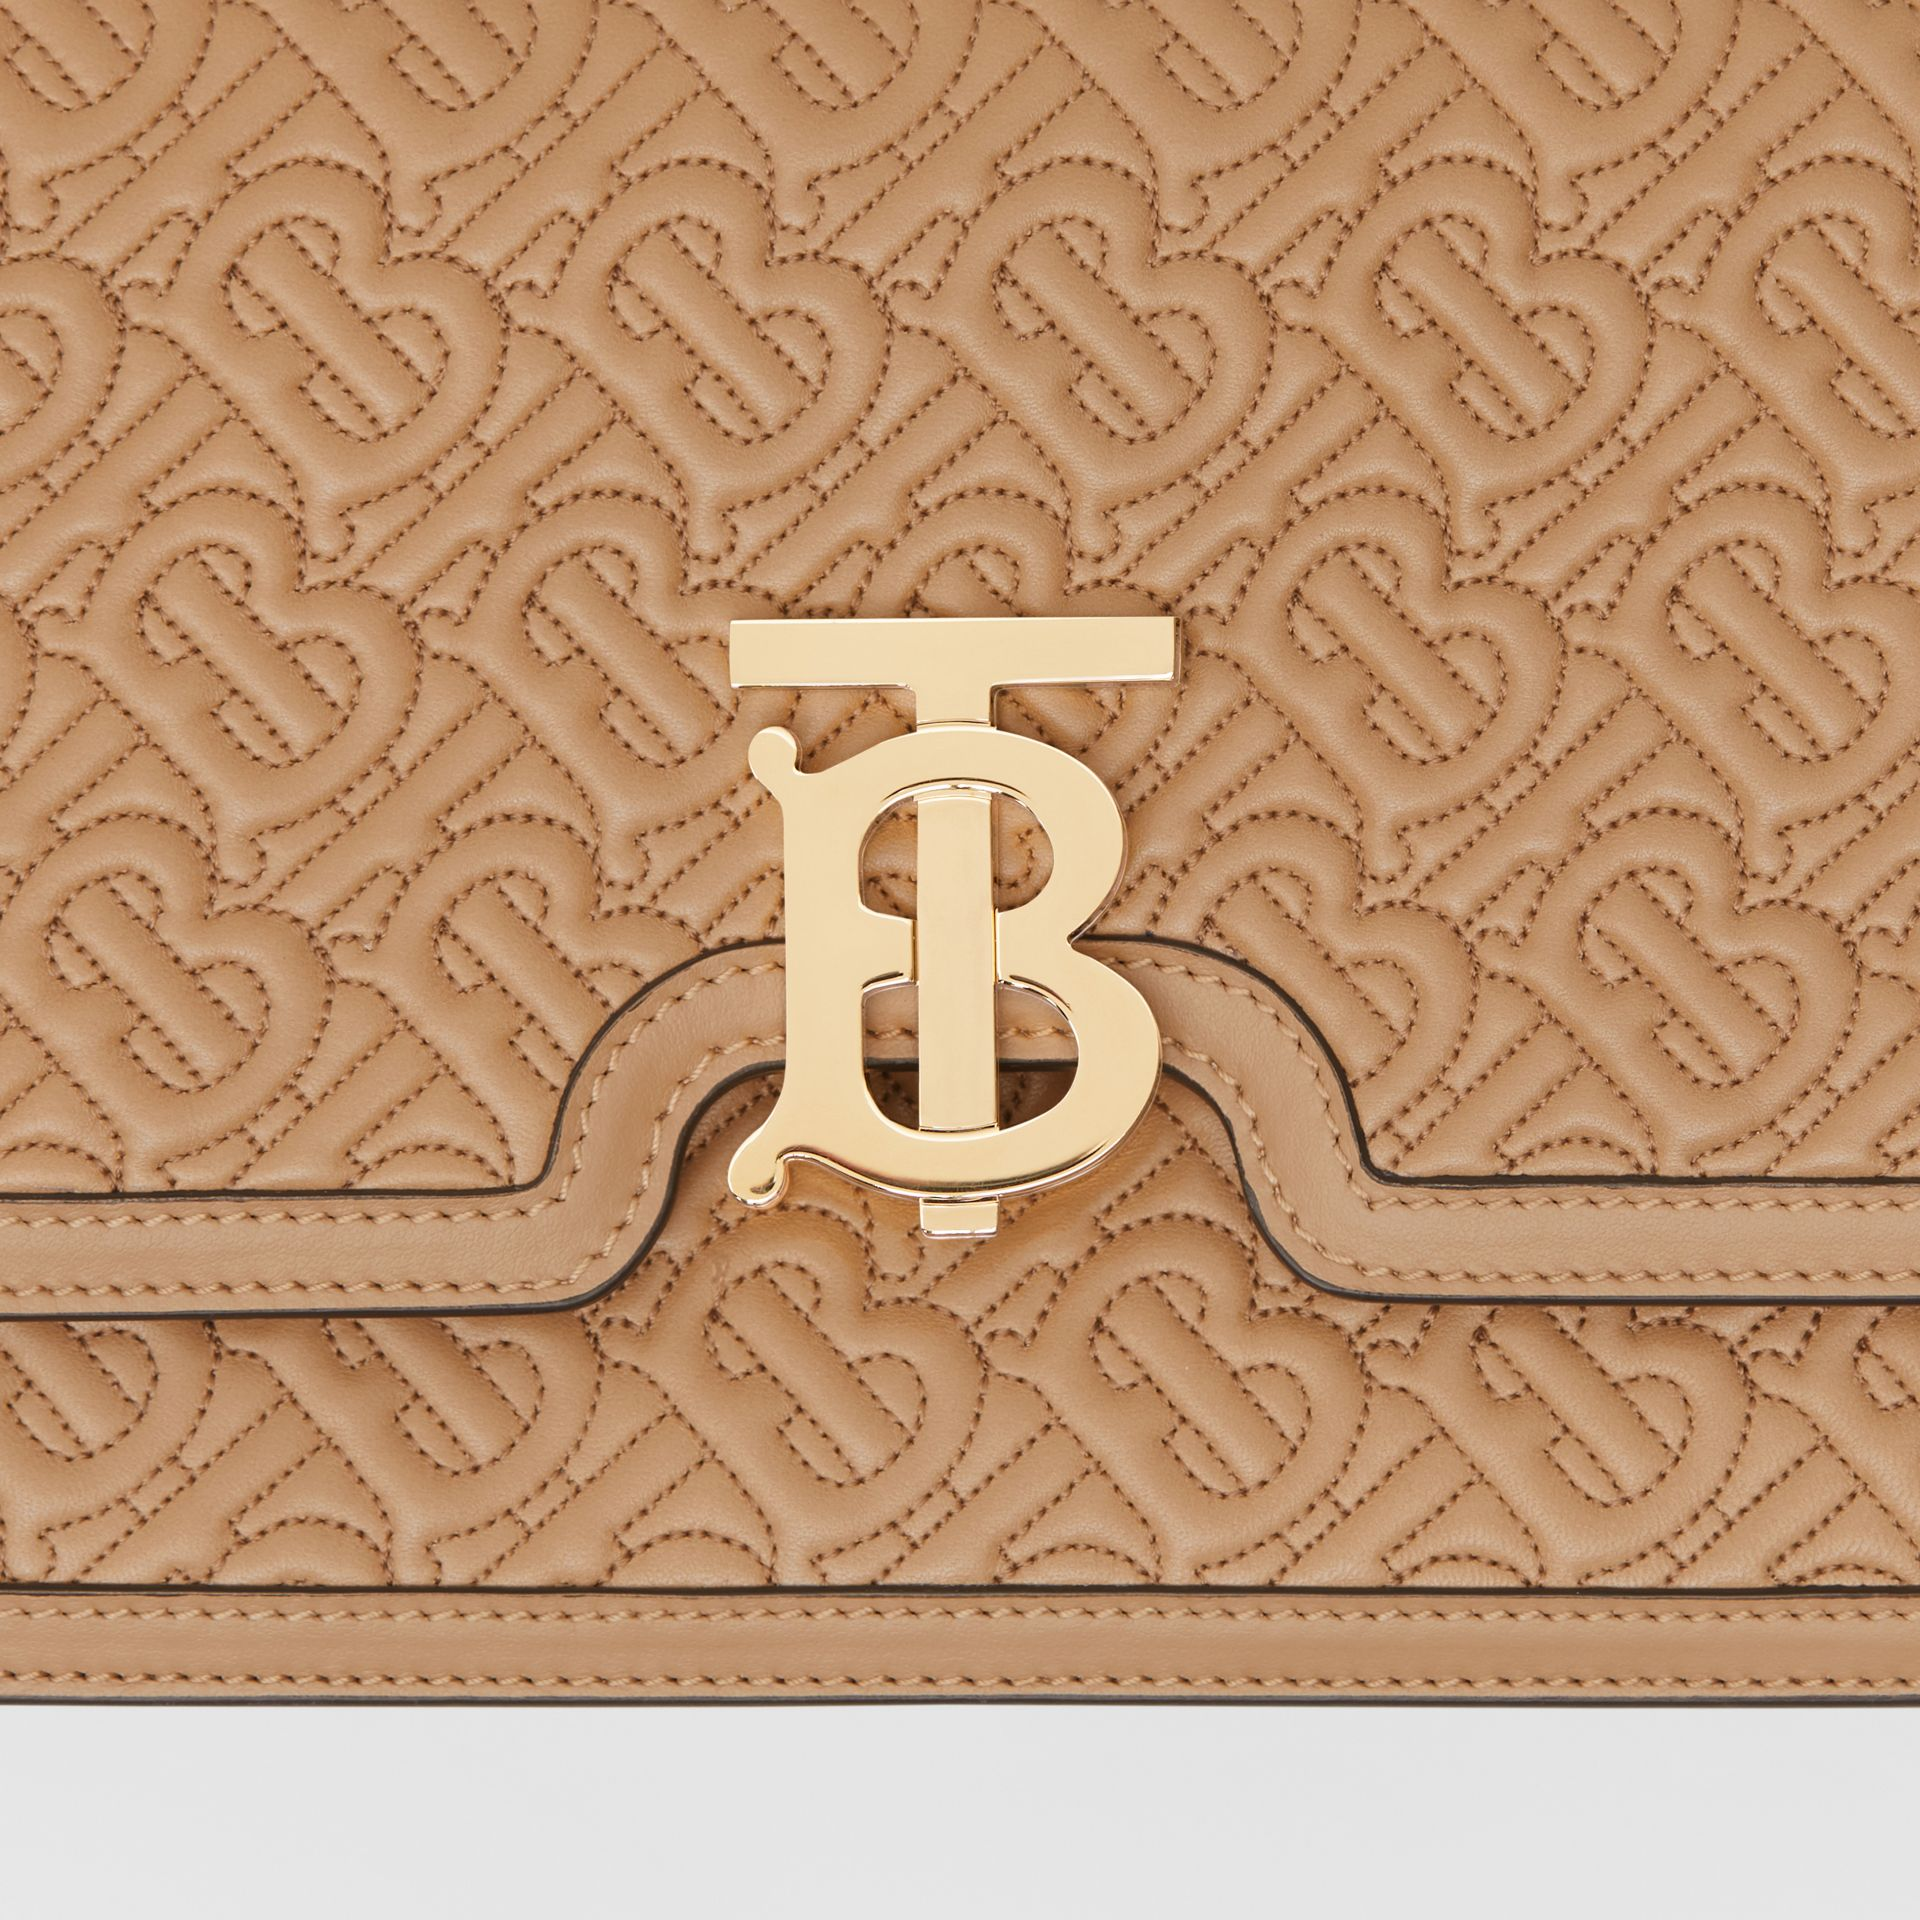 Medium Quilted Monogram Lambskin TB Bag in Honey - Women | Burberry - gallery image 1